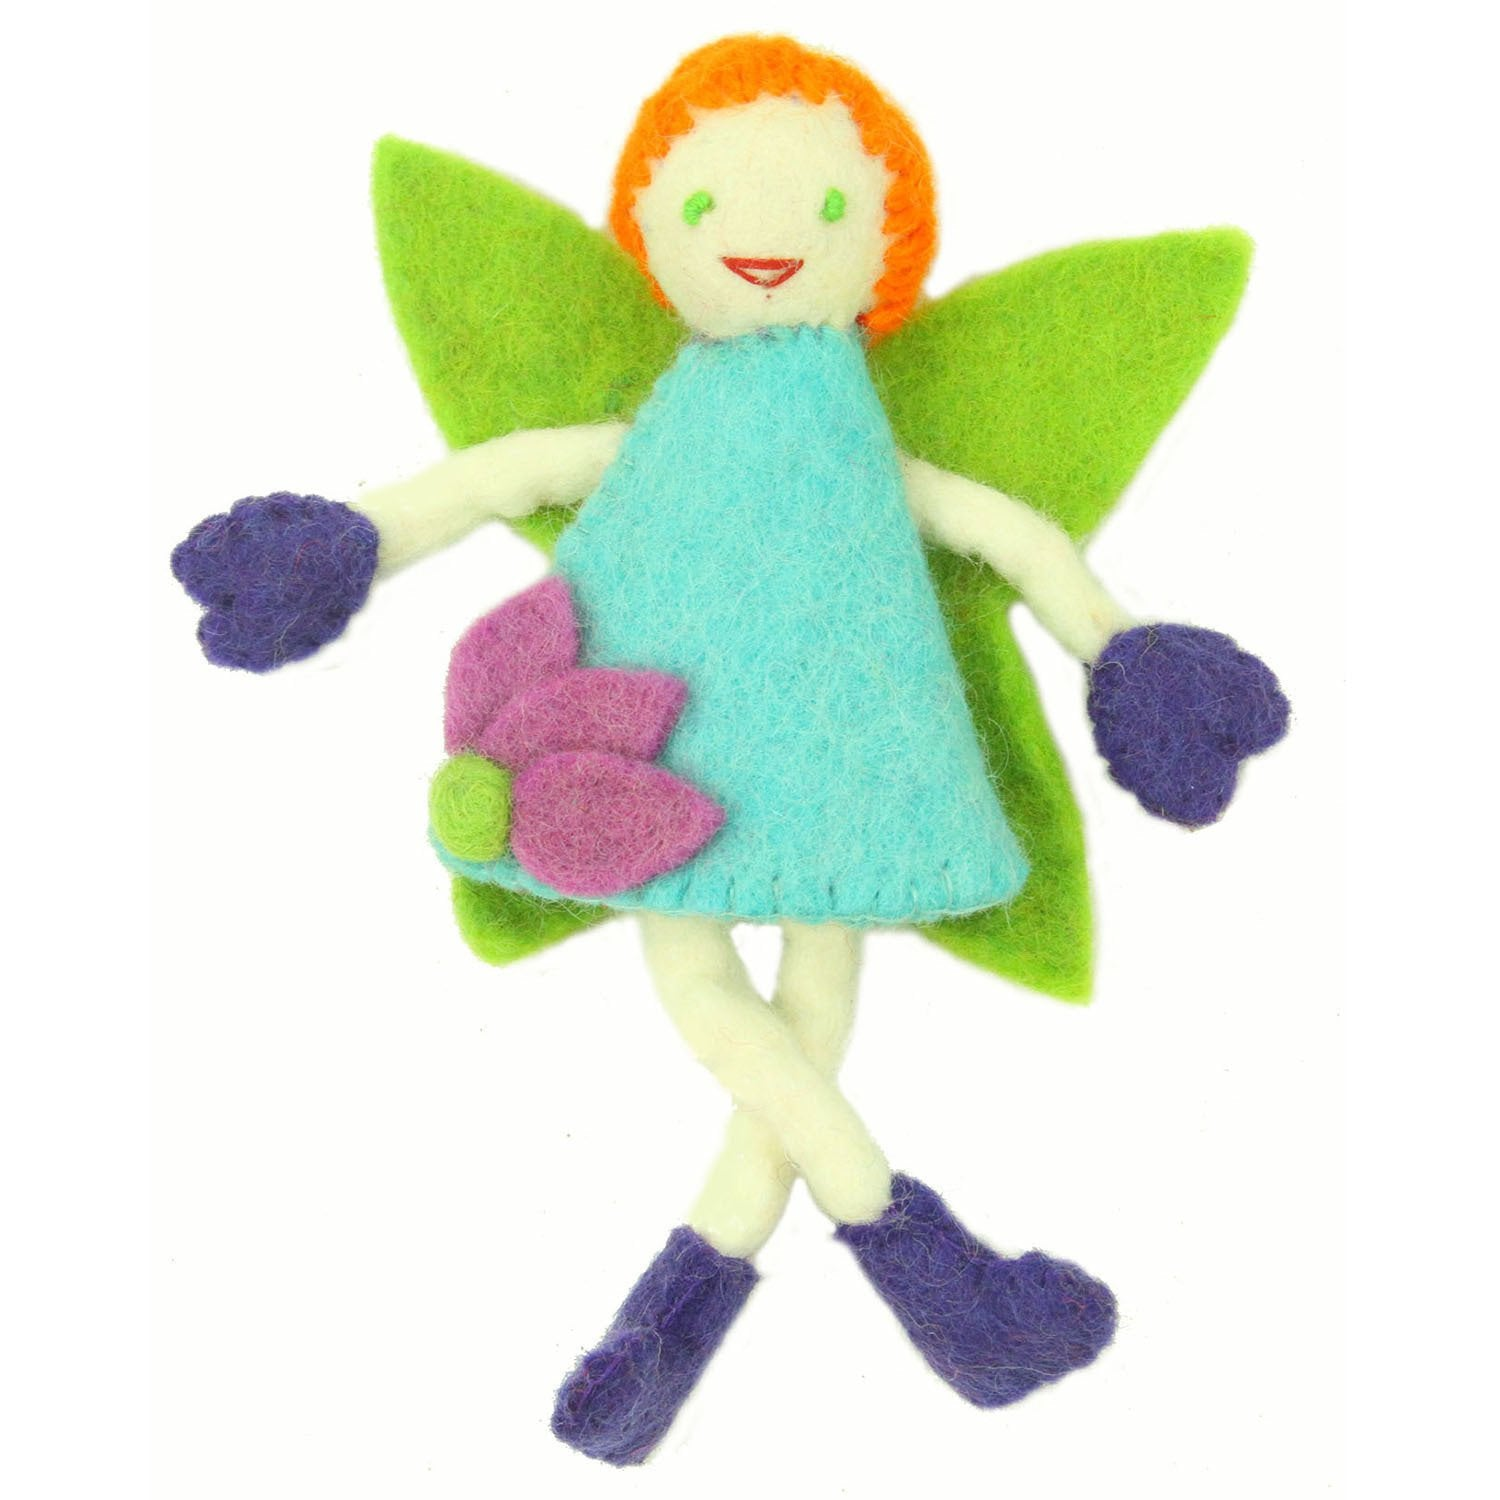 Red Hair Felt Tooth Fairy Pillow